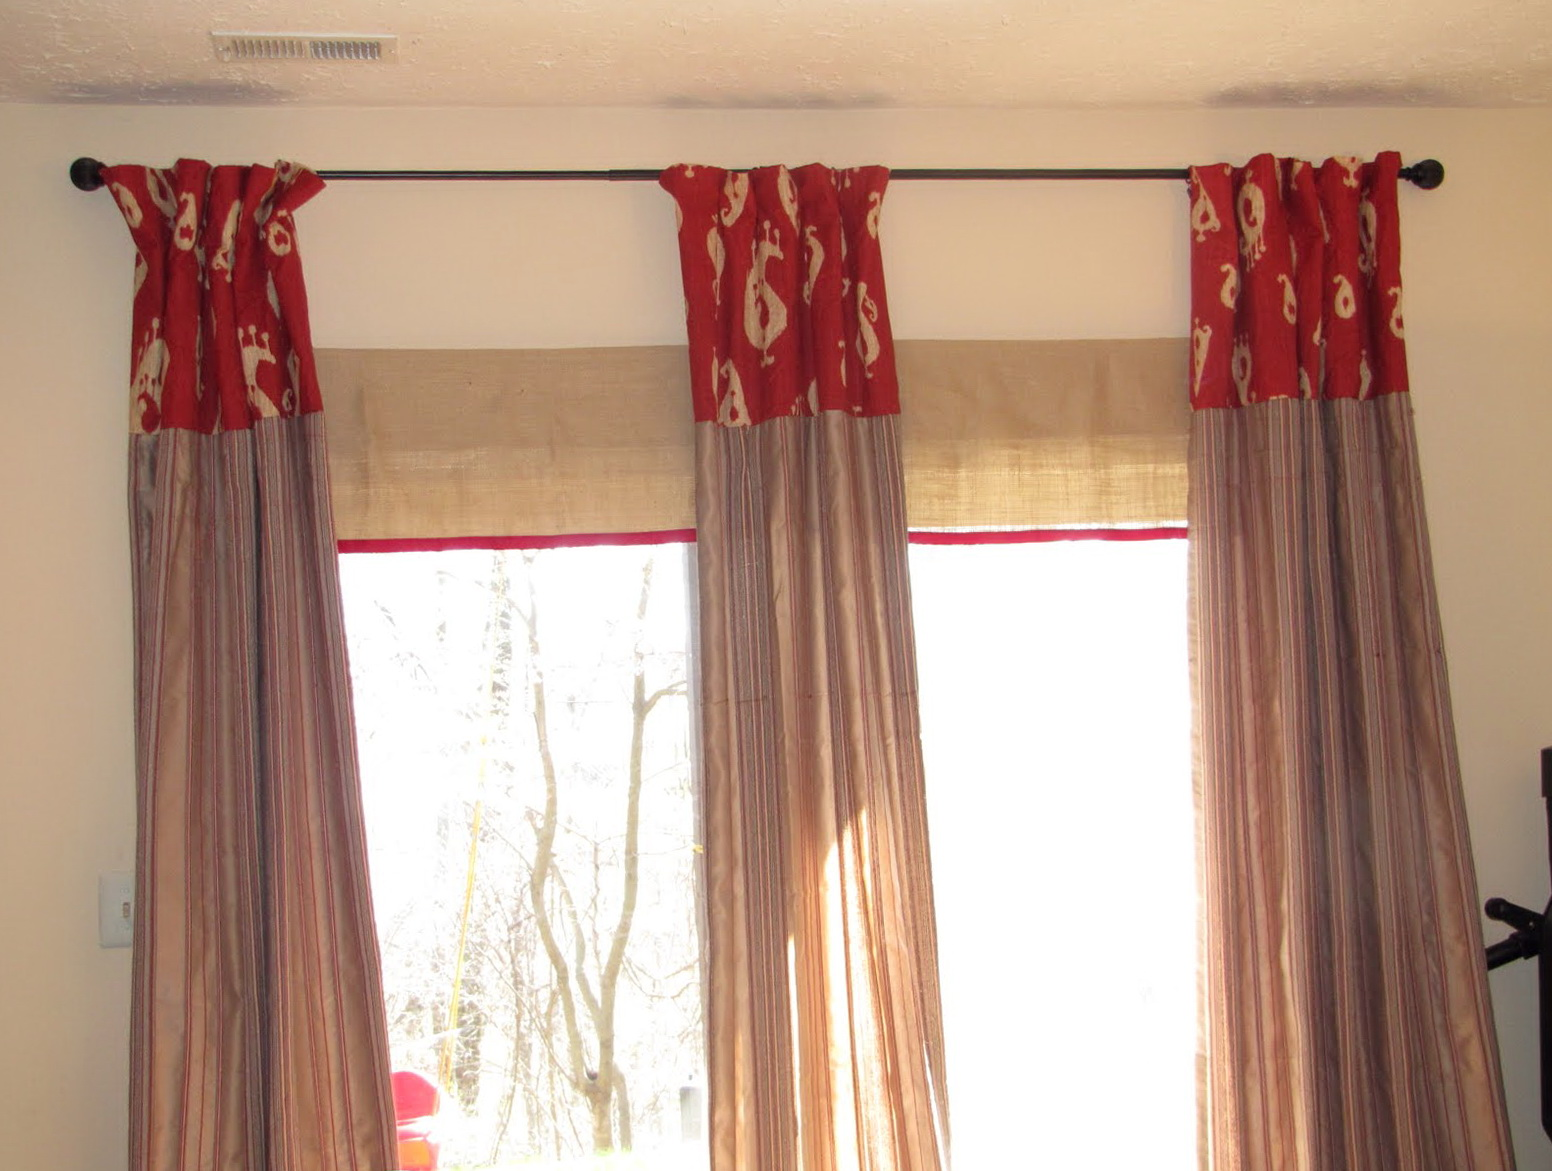 Blinds And Curtains Together